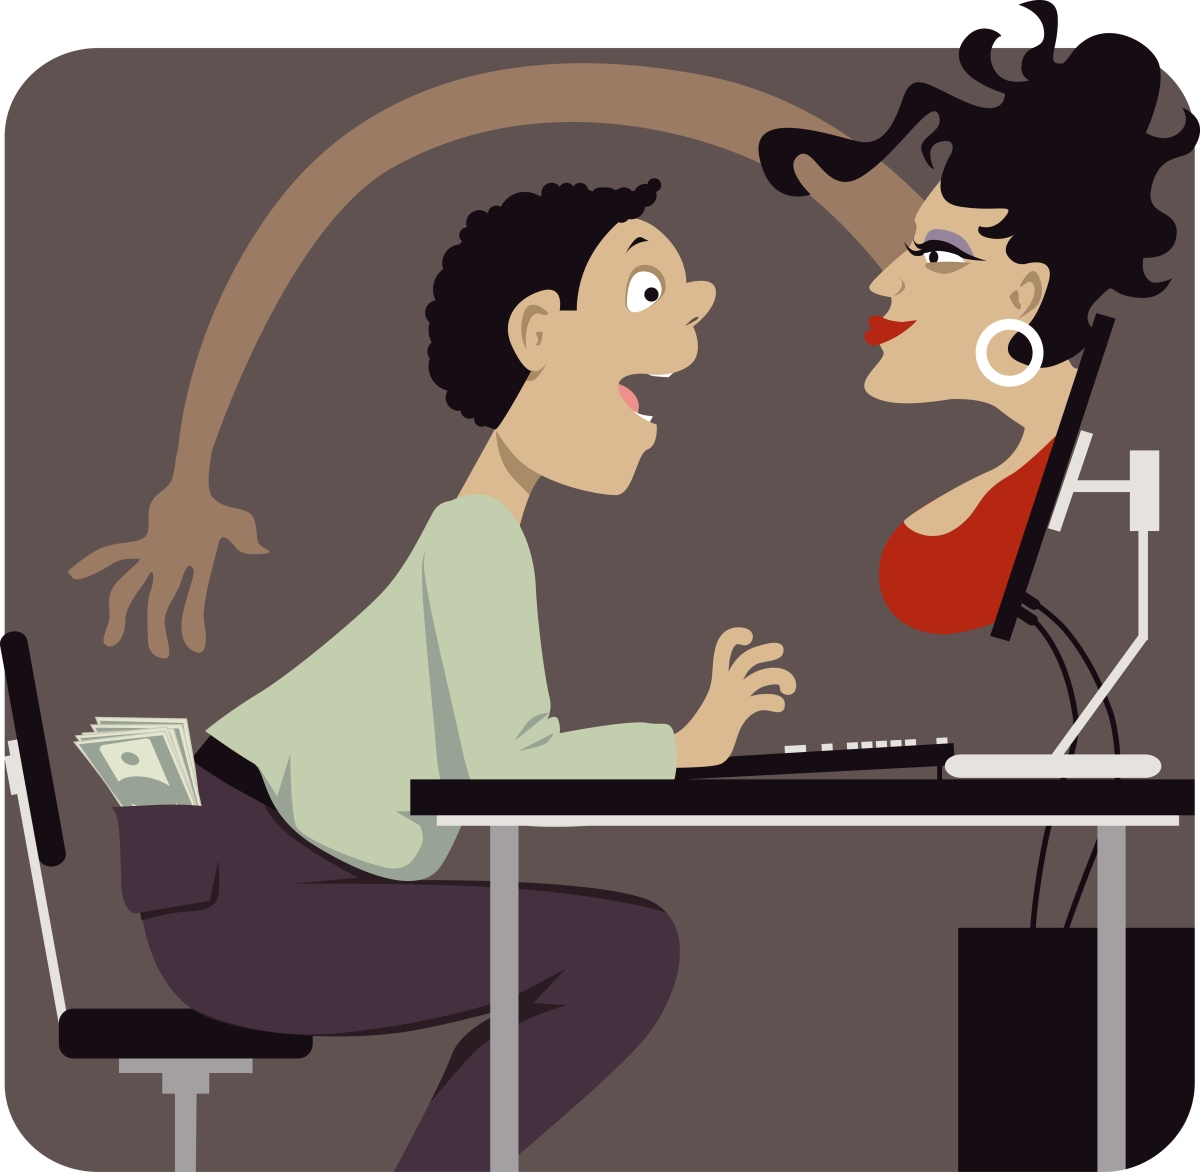 Scammers, Sob Stories & Scam-Packs #datingscam #romancescam #scampacks #catfish